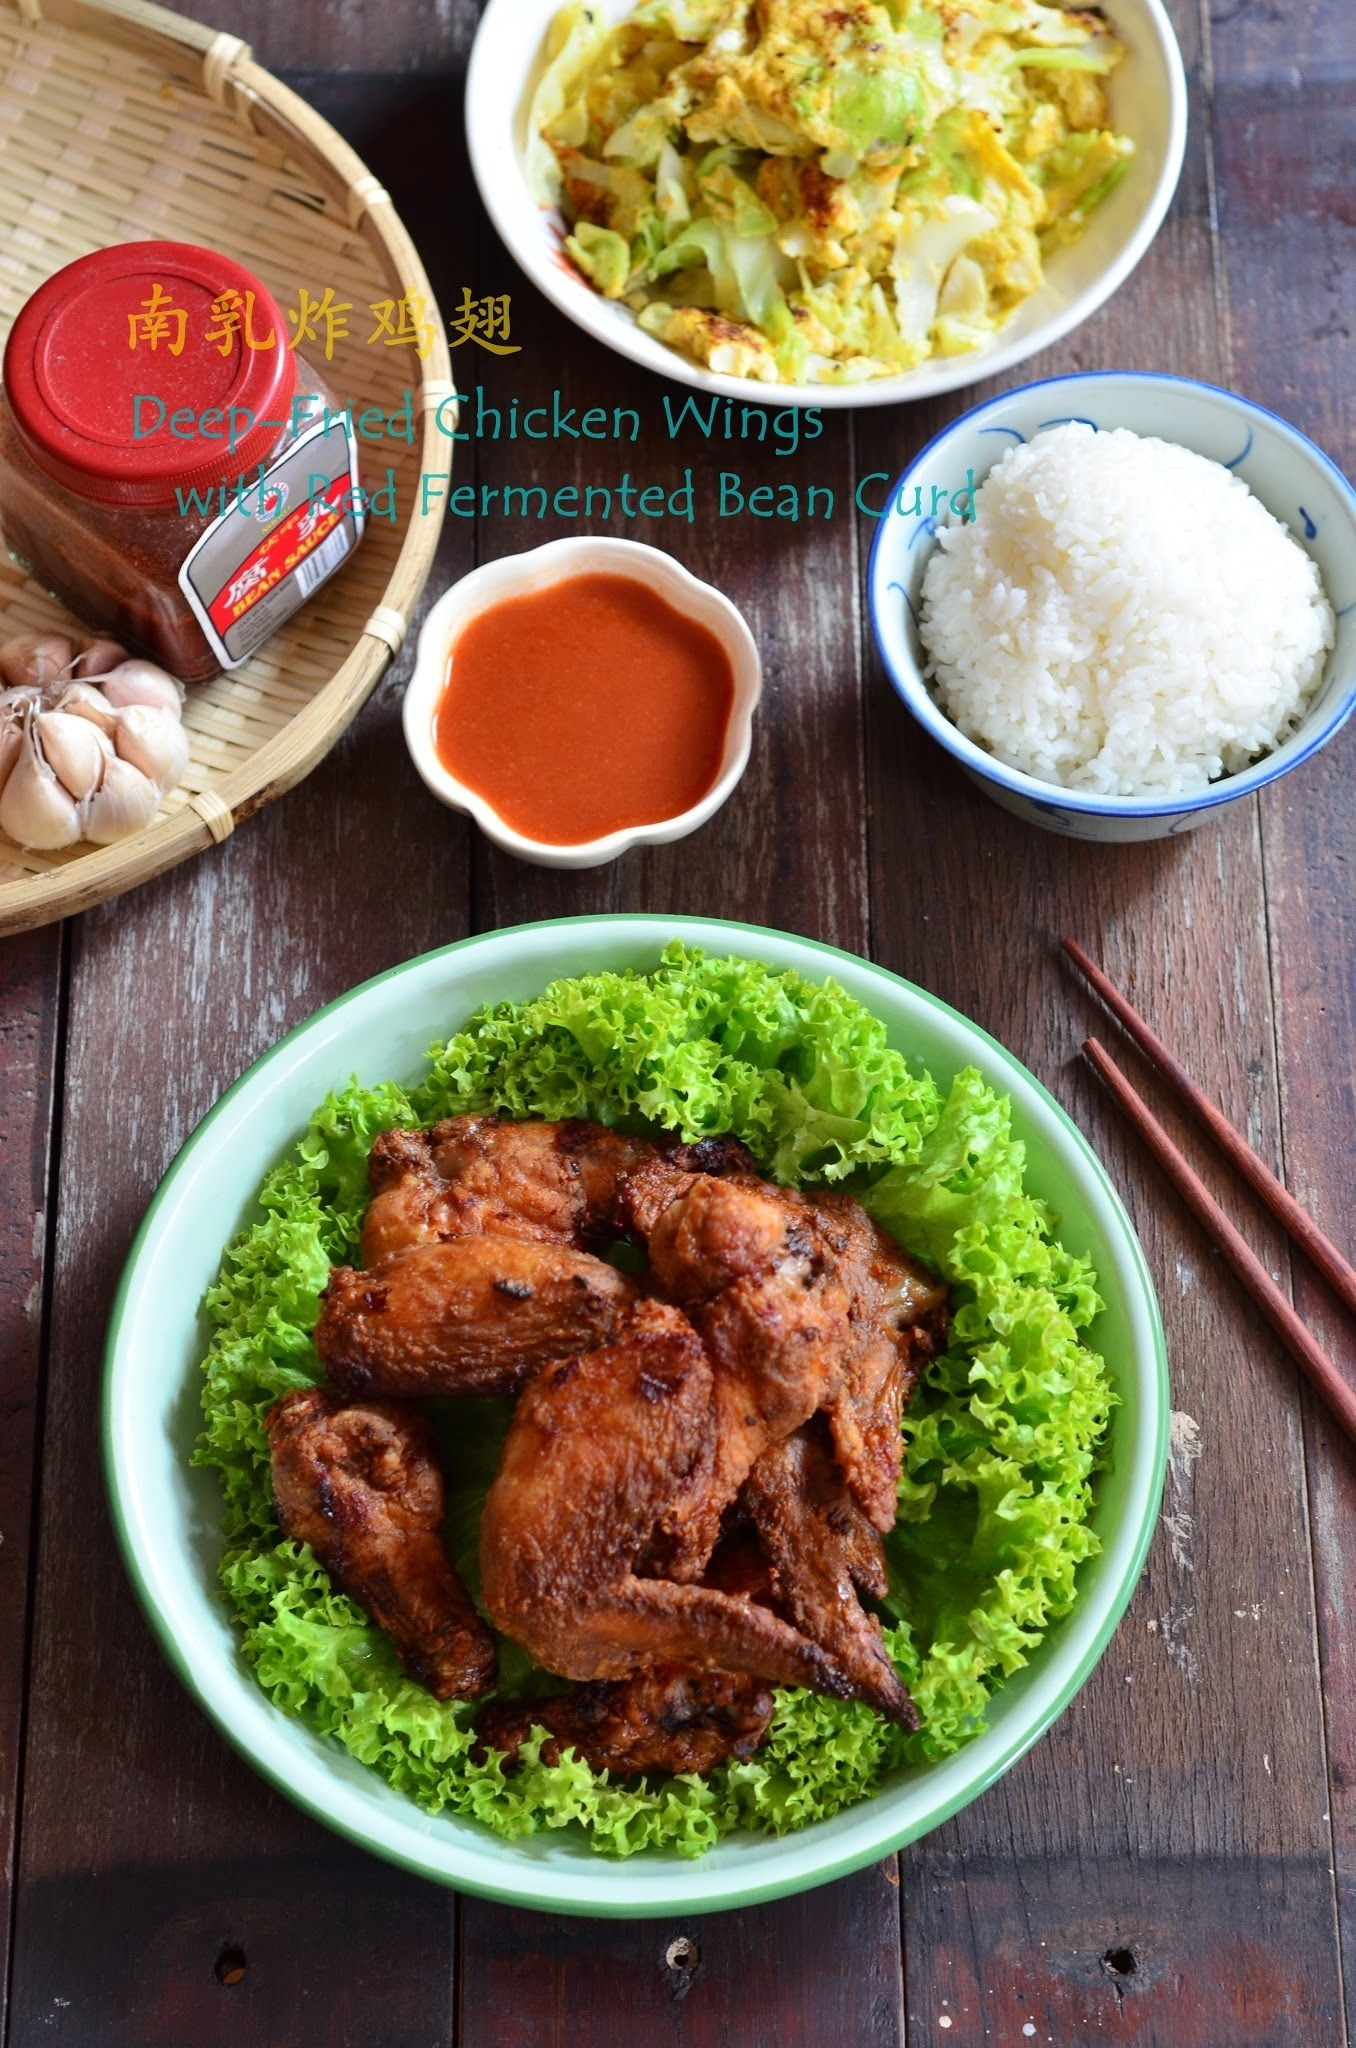 南乳炸鸡翅 Deep-Fried Chicken Wings with Red Fermented Bean Curd